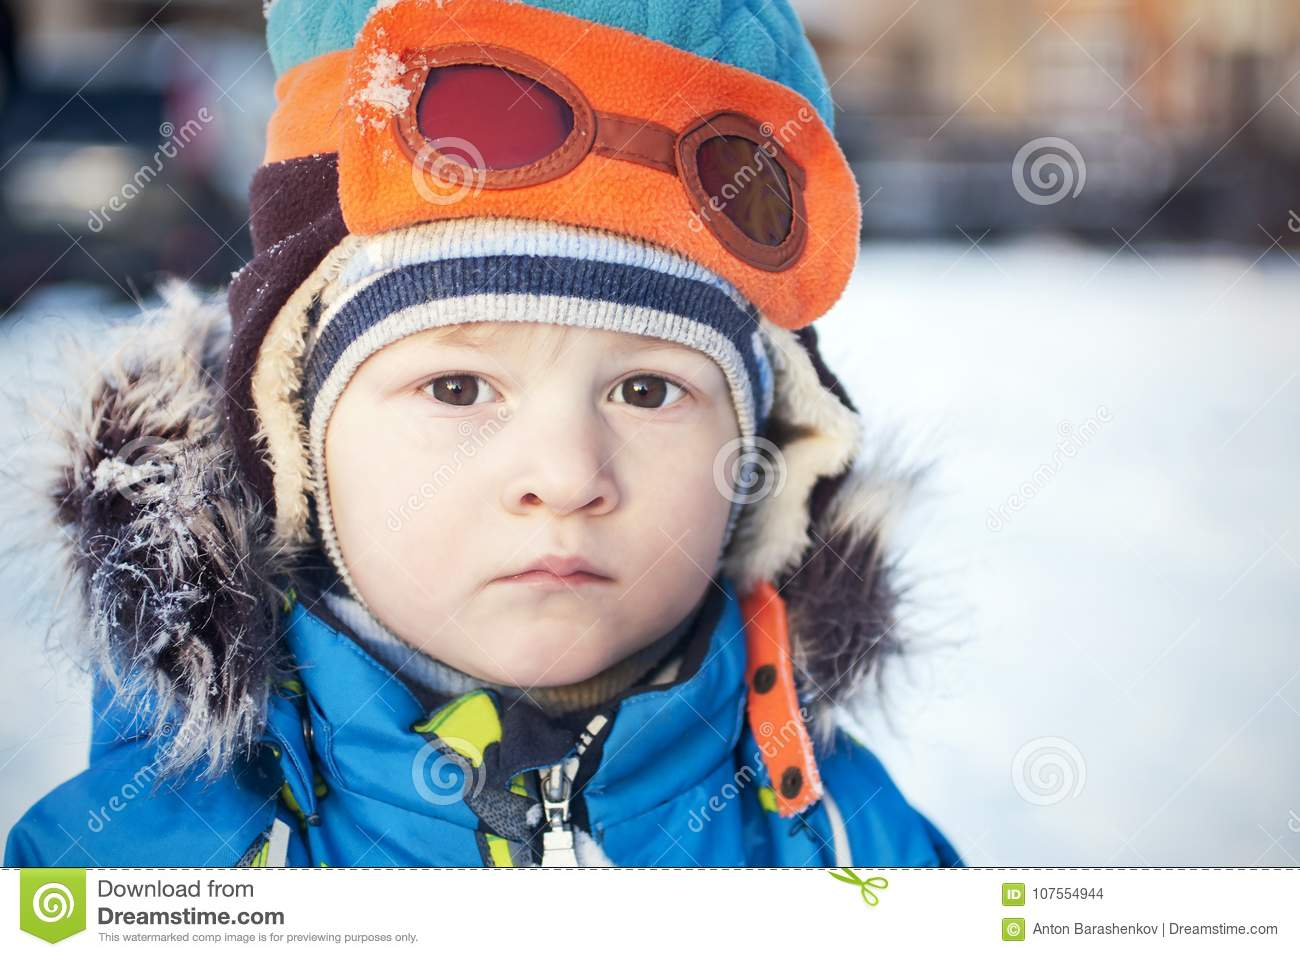 Toddler In Snow Winter In Fur Coat And Pilot Hat Stock Photo - Image ... 158f940ee58